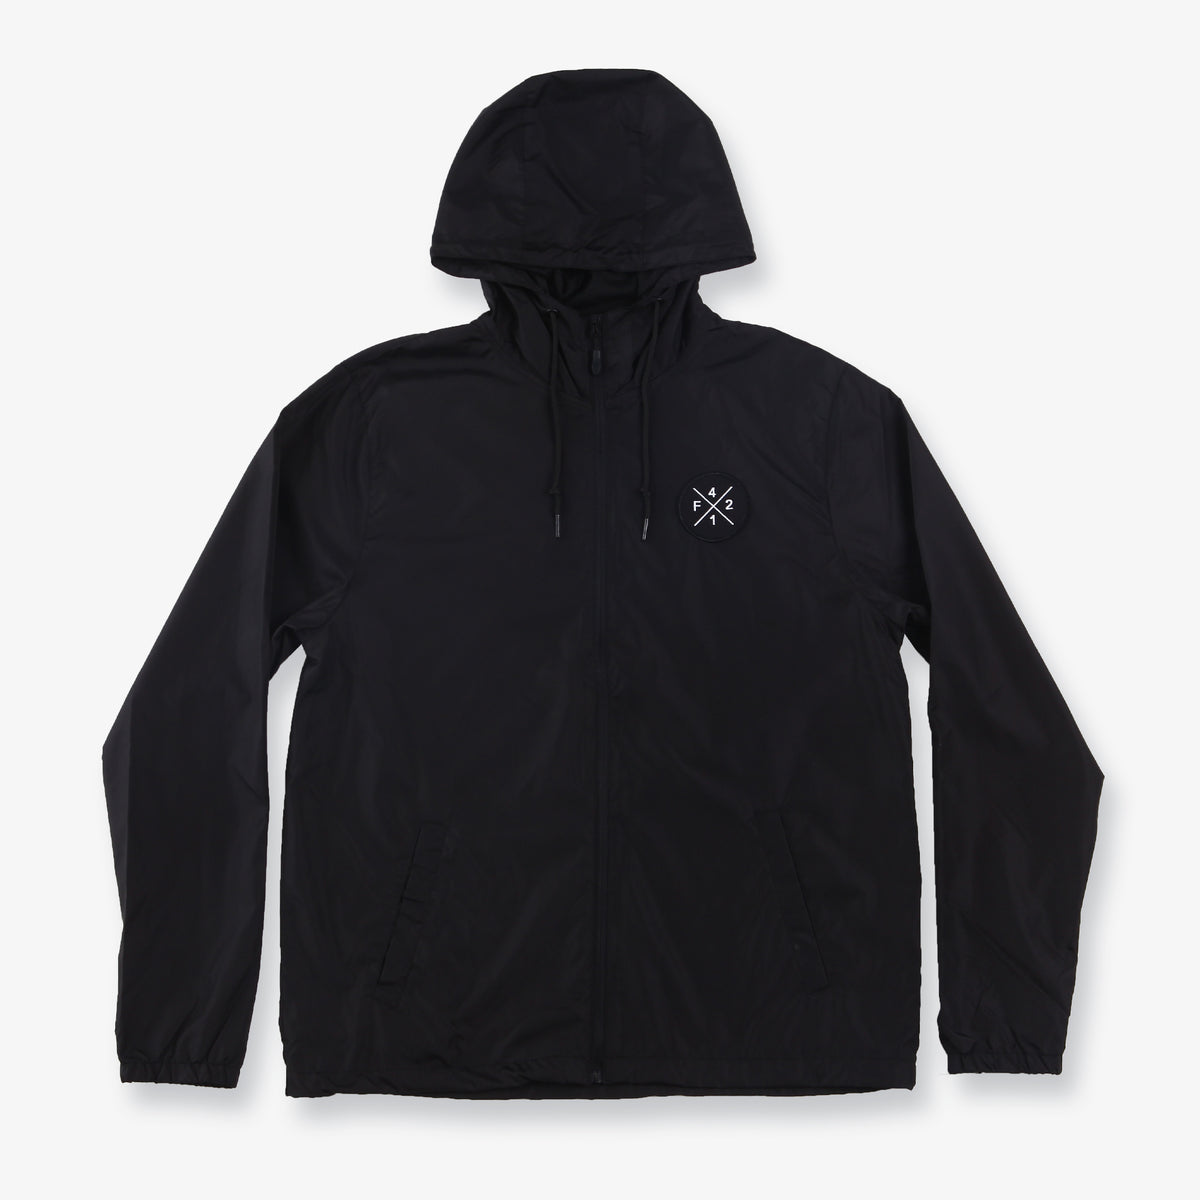 Yucatan Windbreaker Jacket - Black